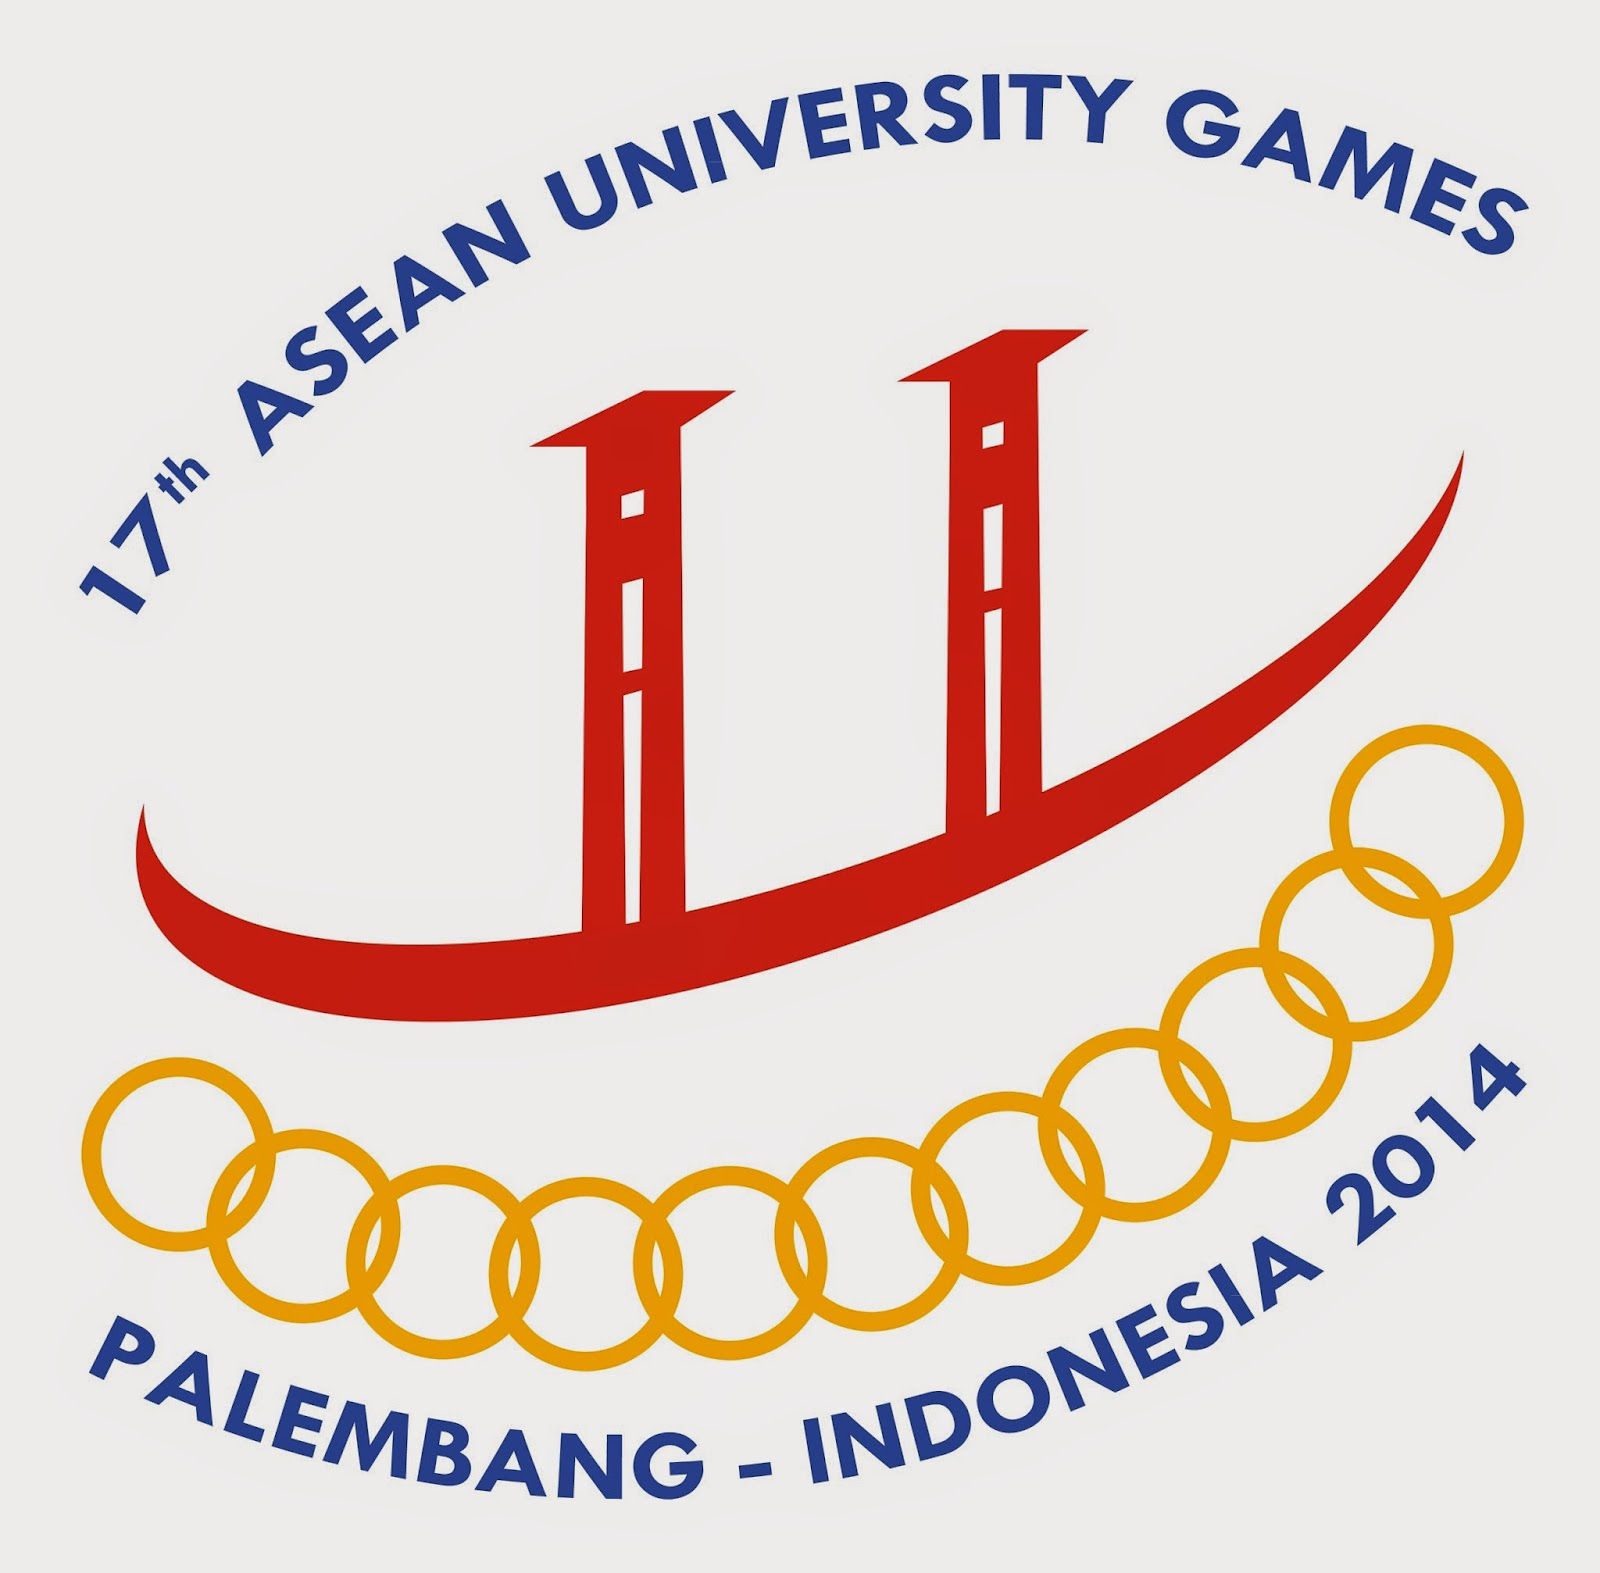 ASEAN University Games 2014, Palembang - Indonesia